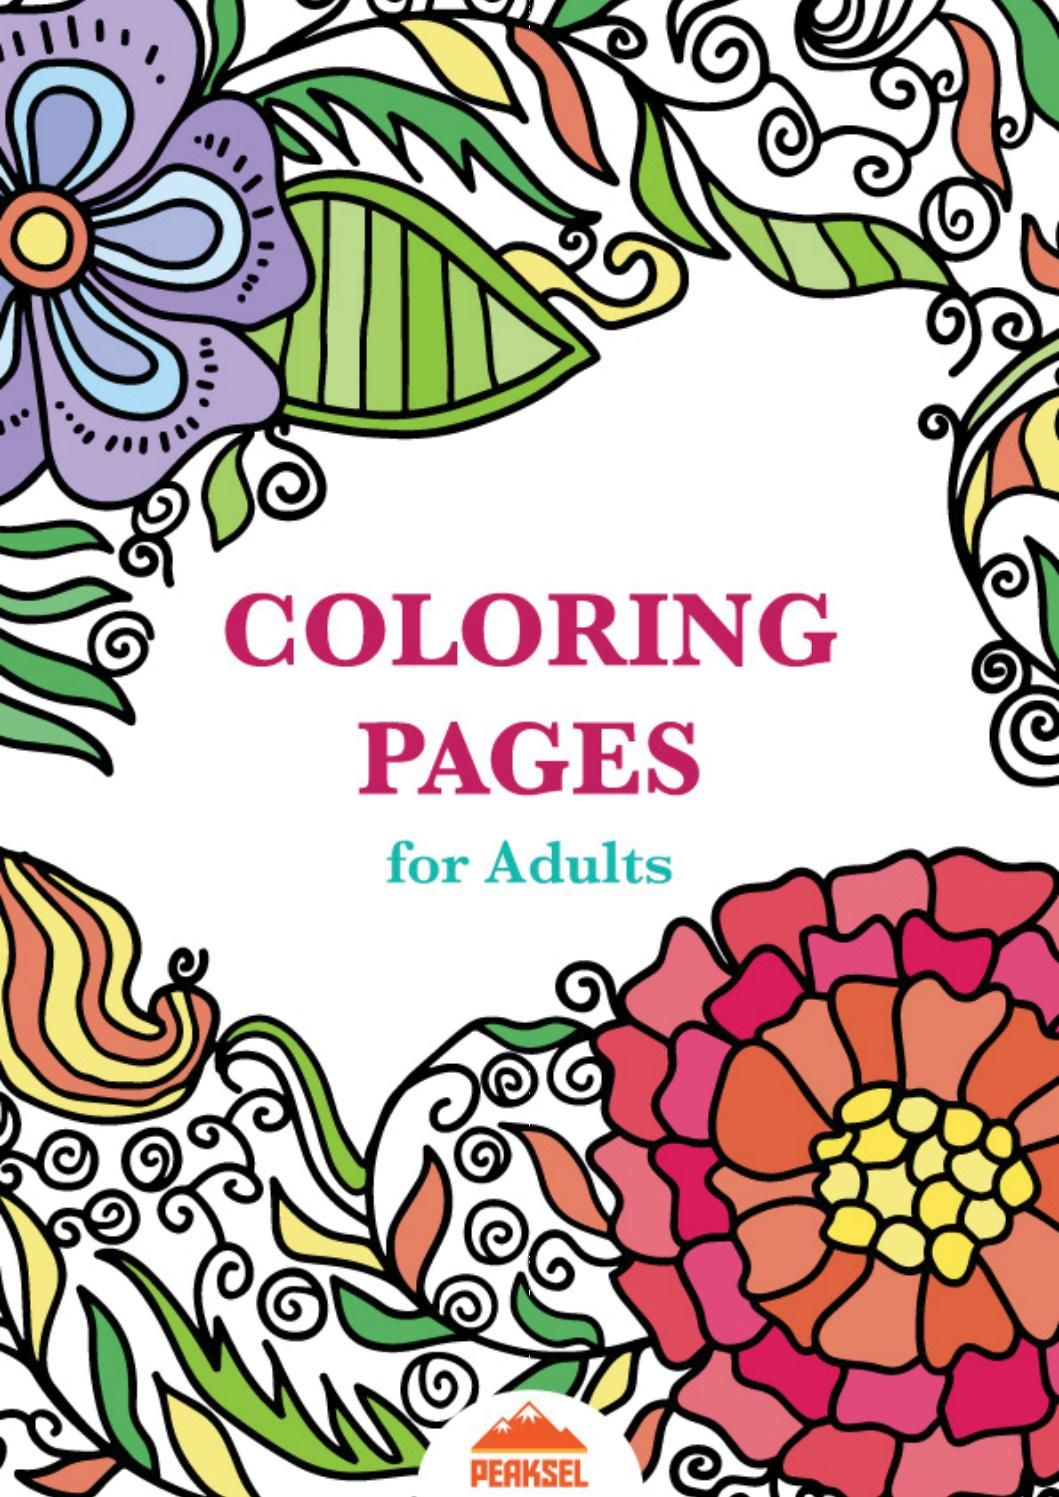 Adults and coloring books - Coloring Pages For Adults Free Adult Coloring Book